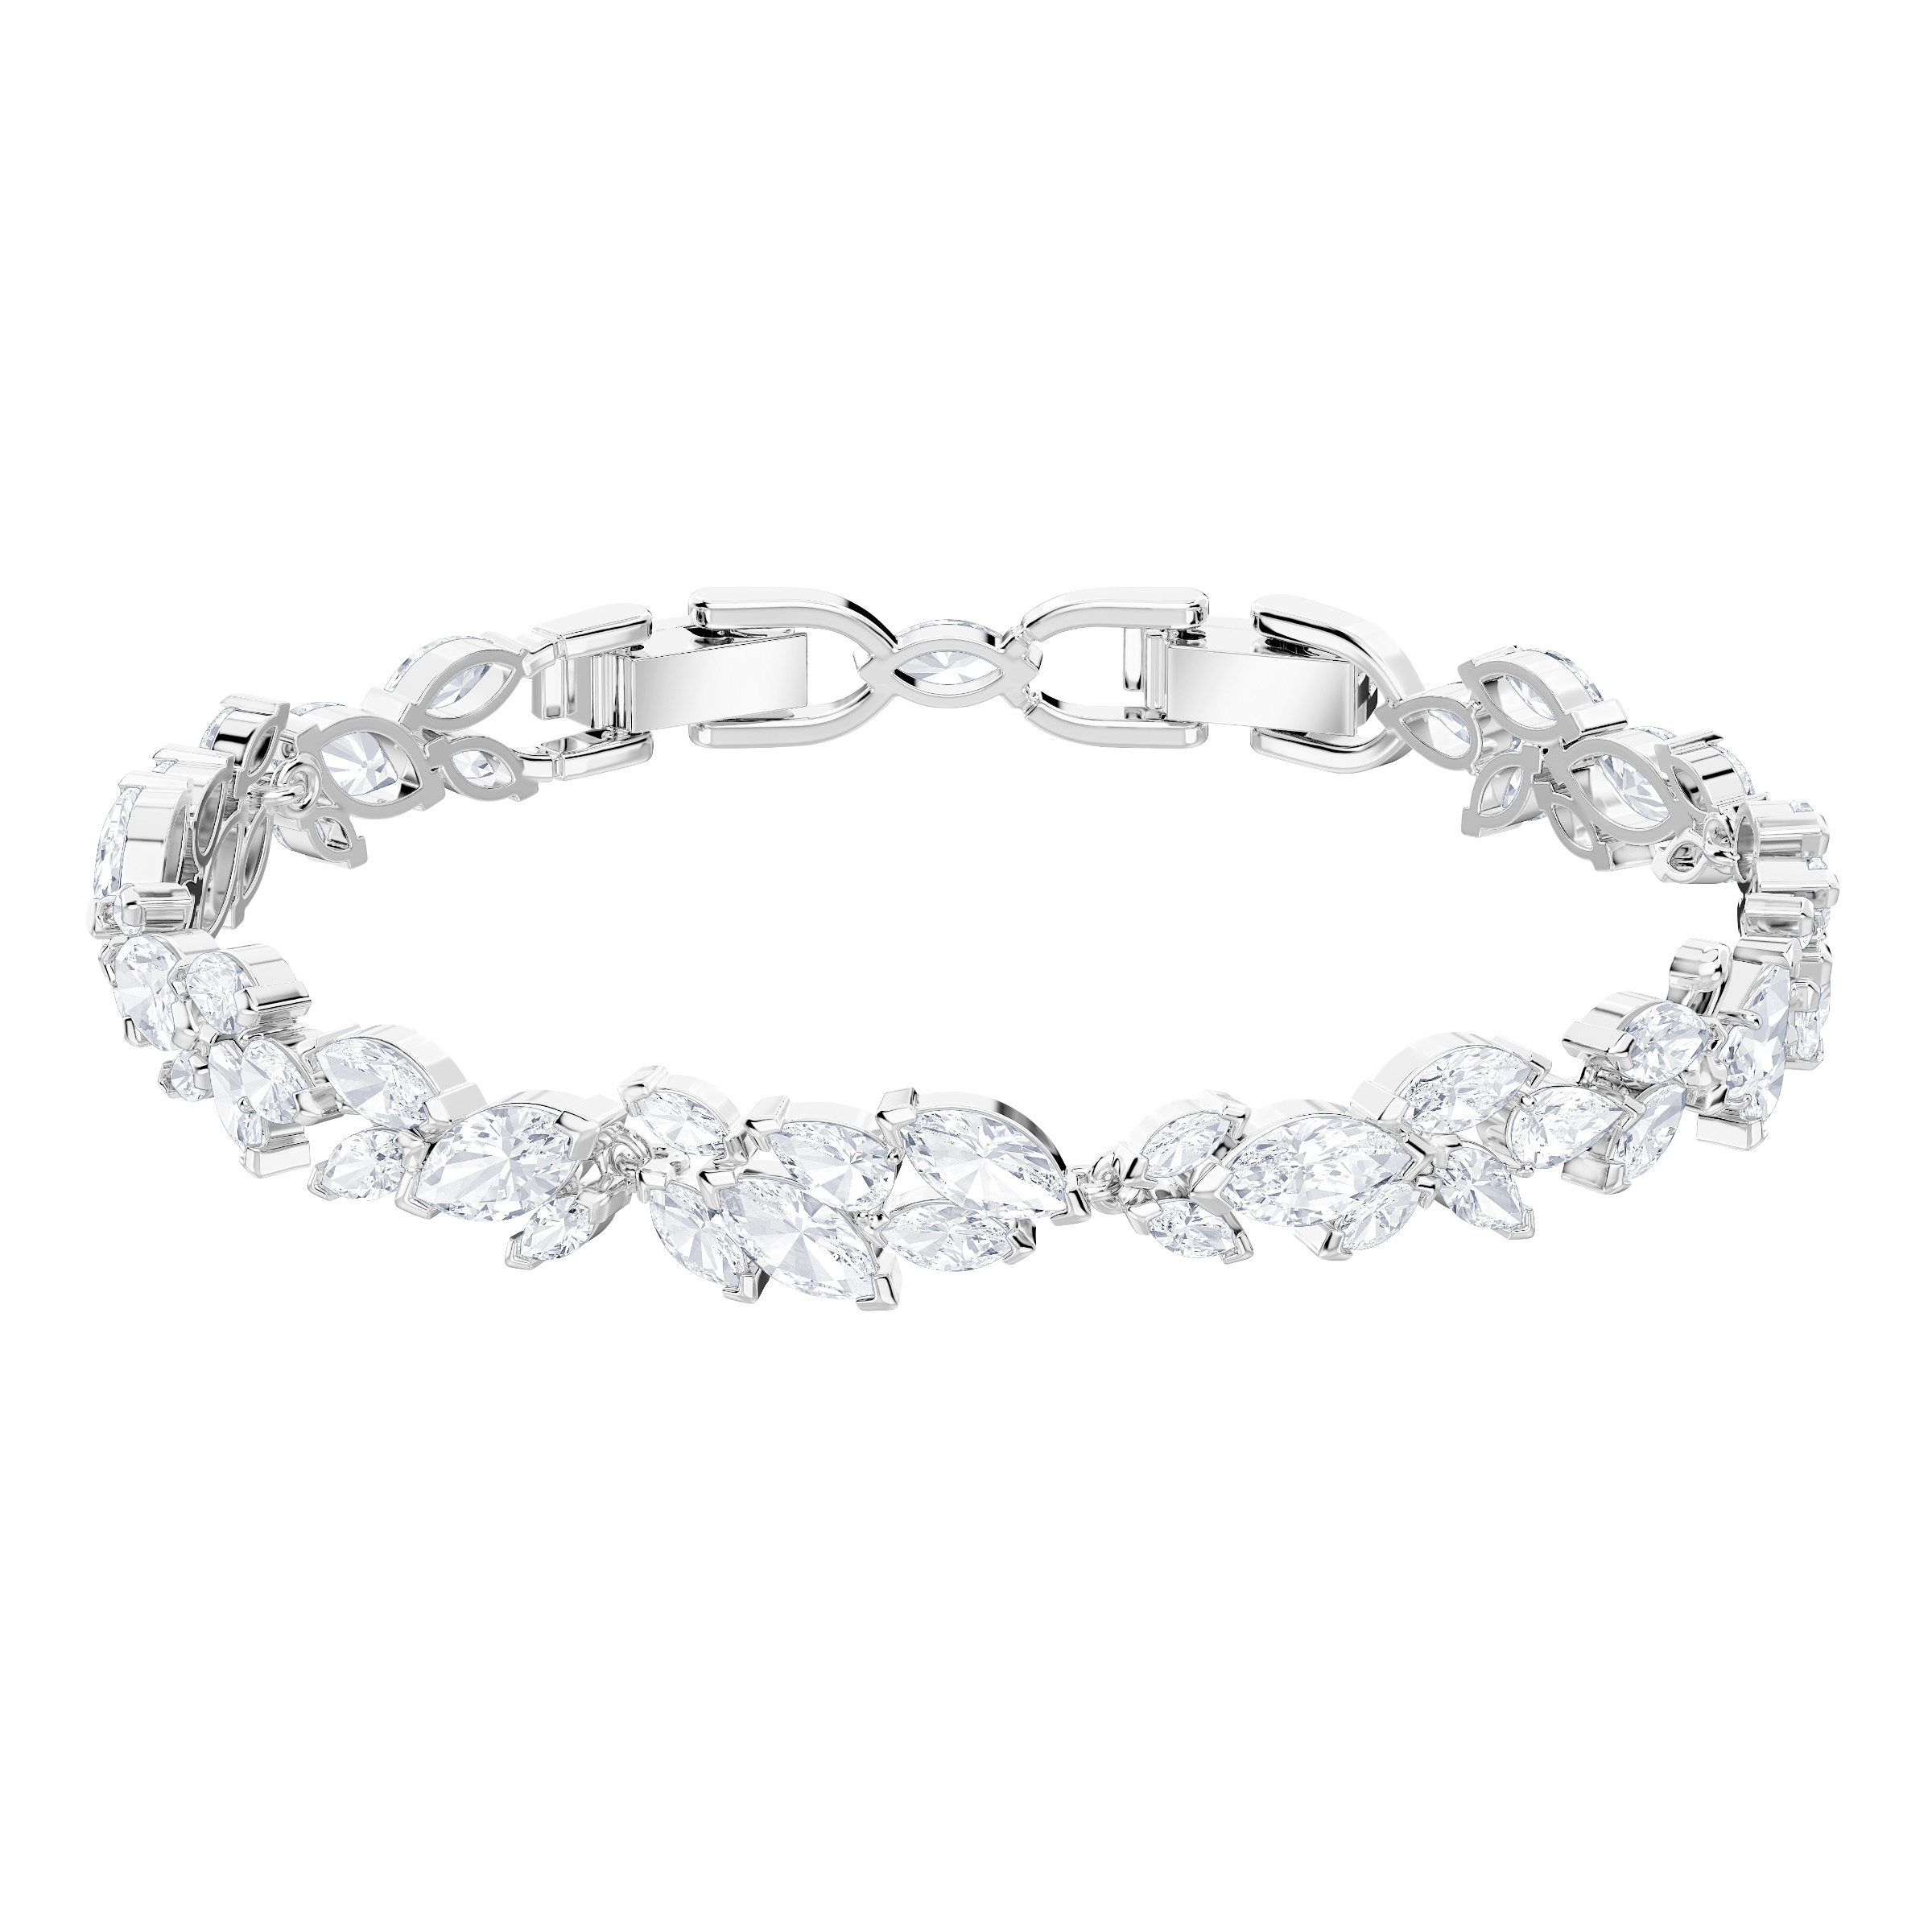 A silver bracelet with crystals inspired by a tree branch.